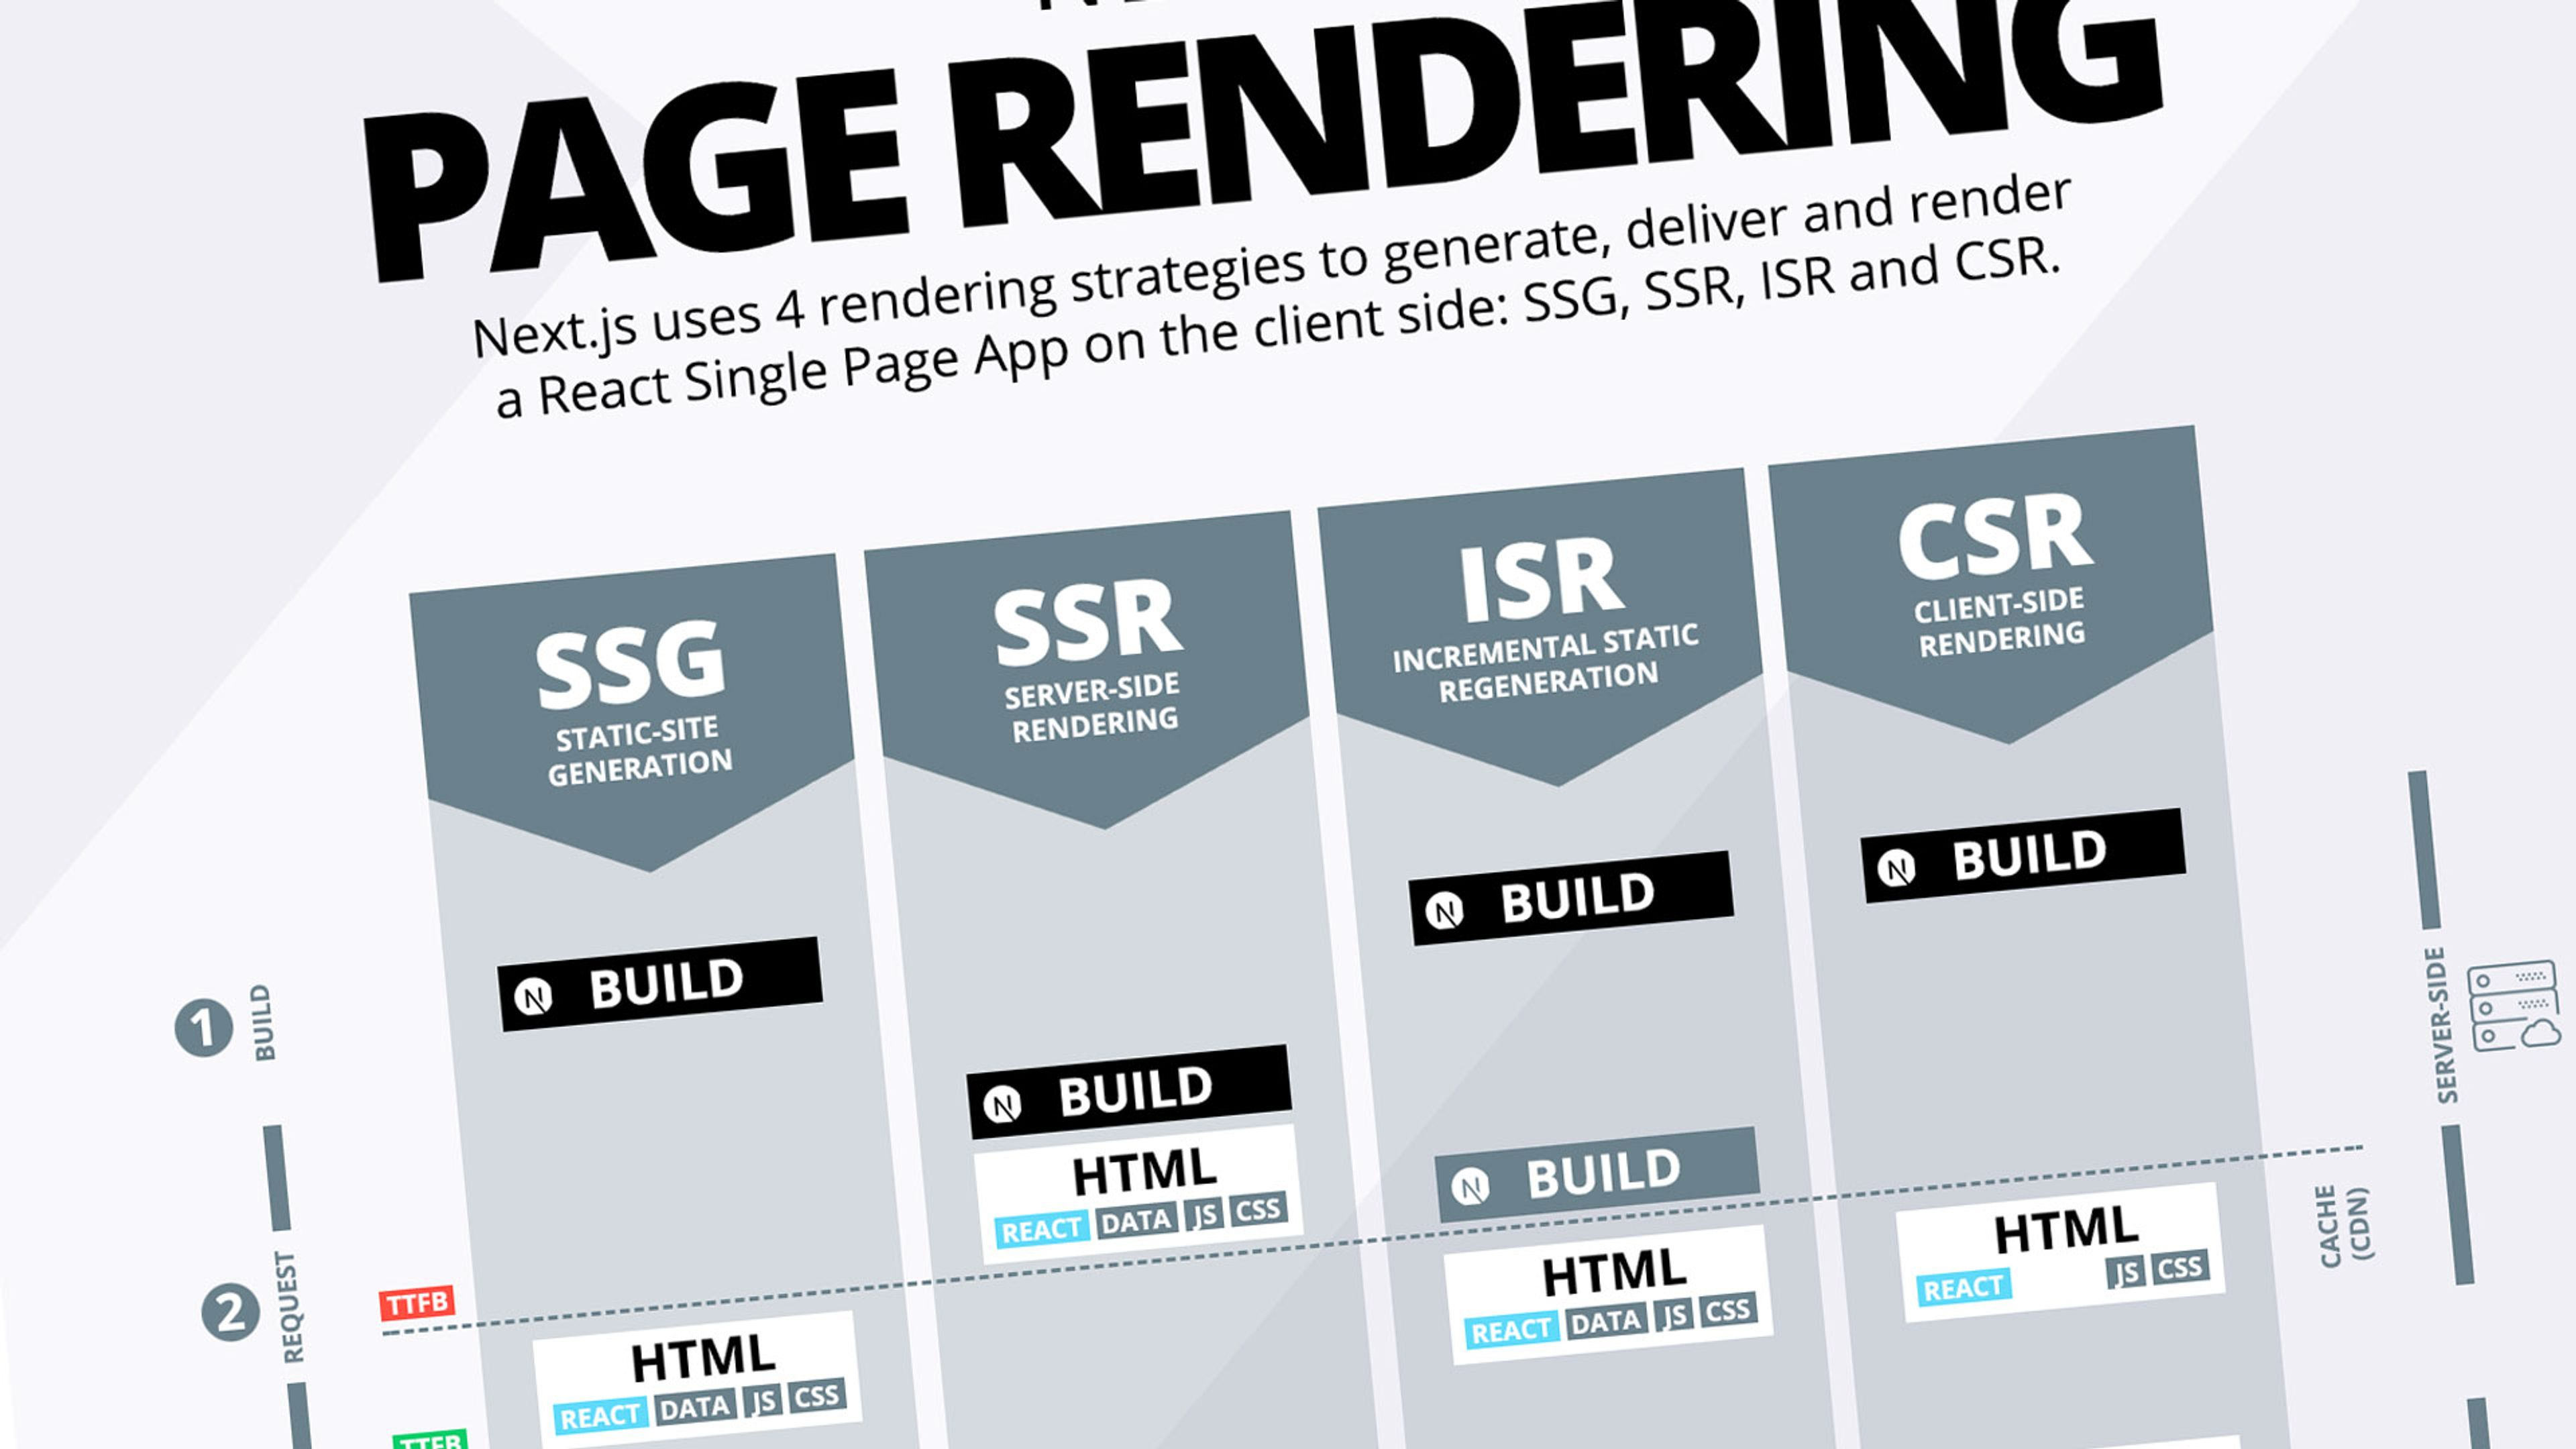 Cover Image for Next.js: The Ultimate Cheat Sheet To Page Rendering